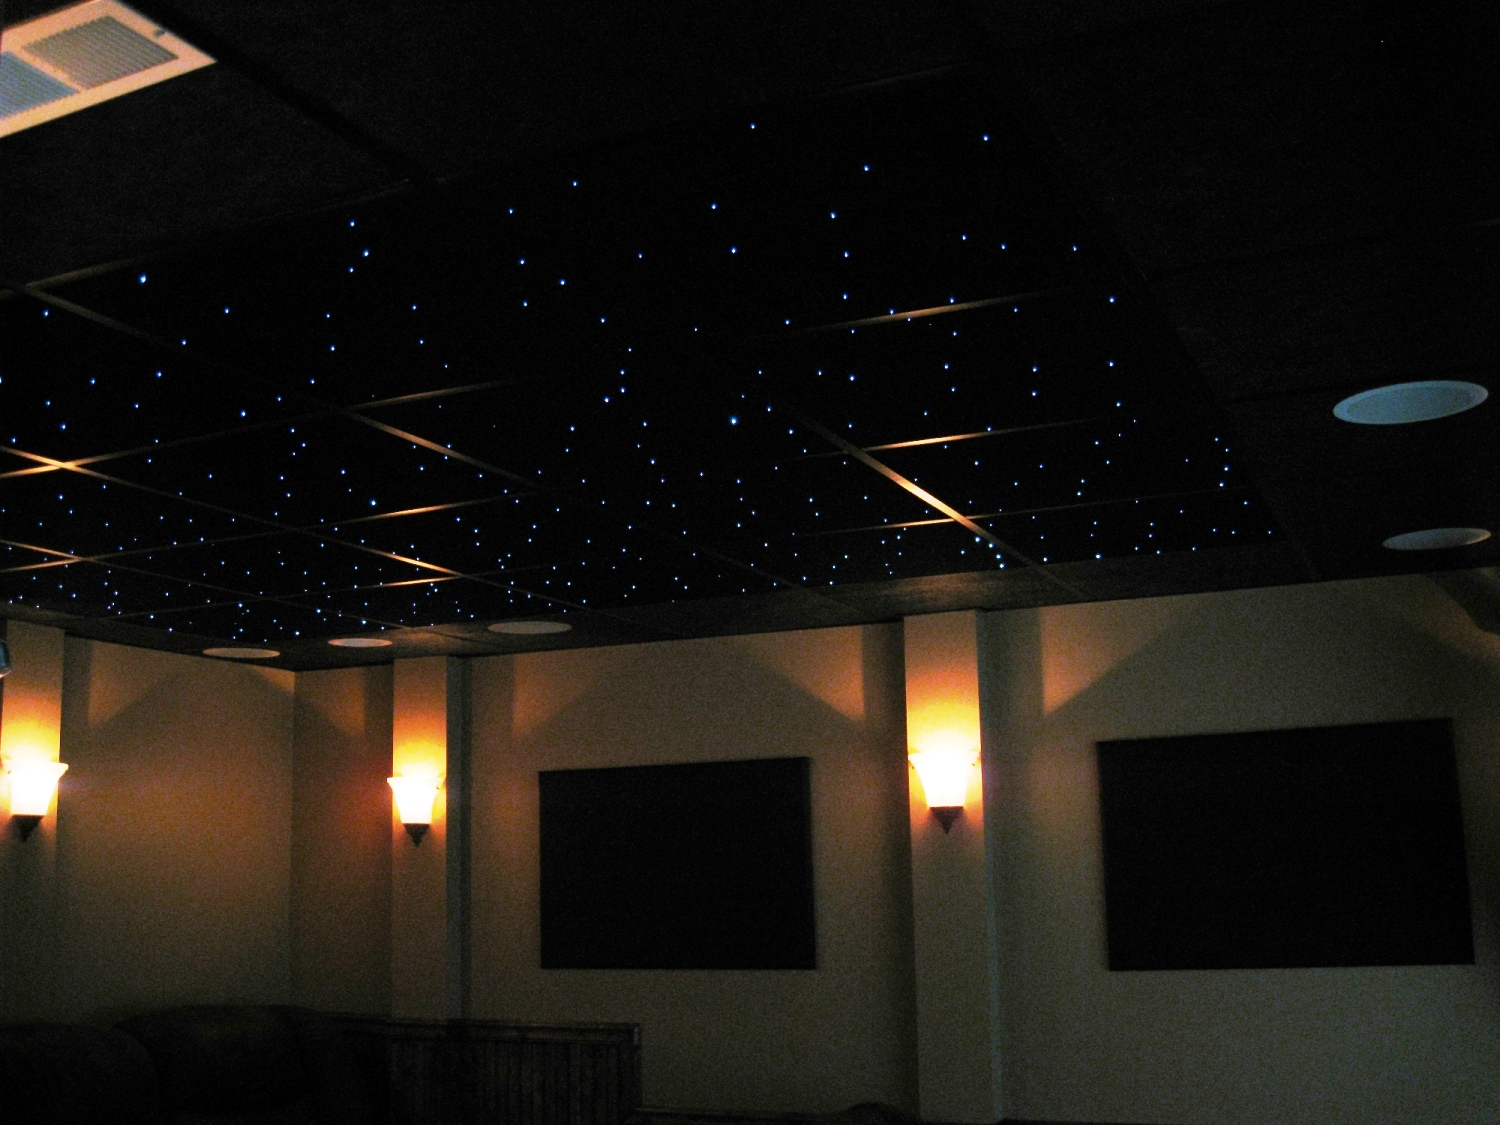 24x24 Skylight Fiber Optic Star Ceiling Panels Made With Quality Acoustic